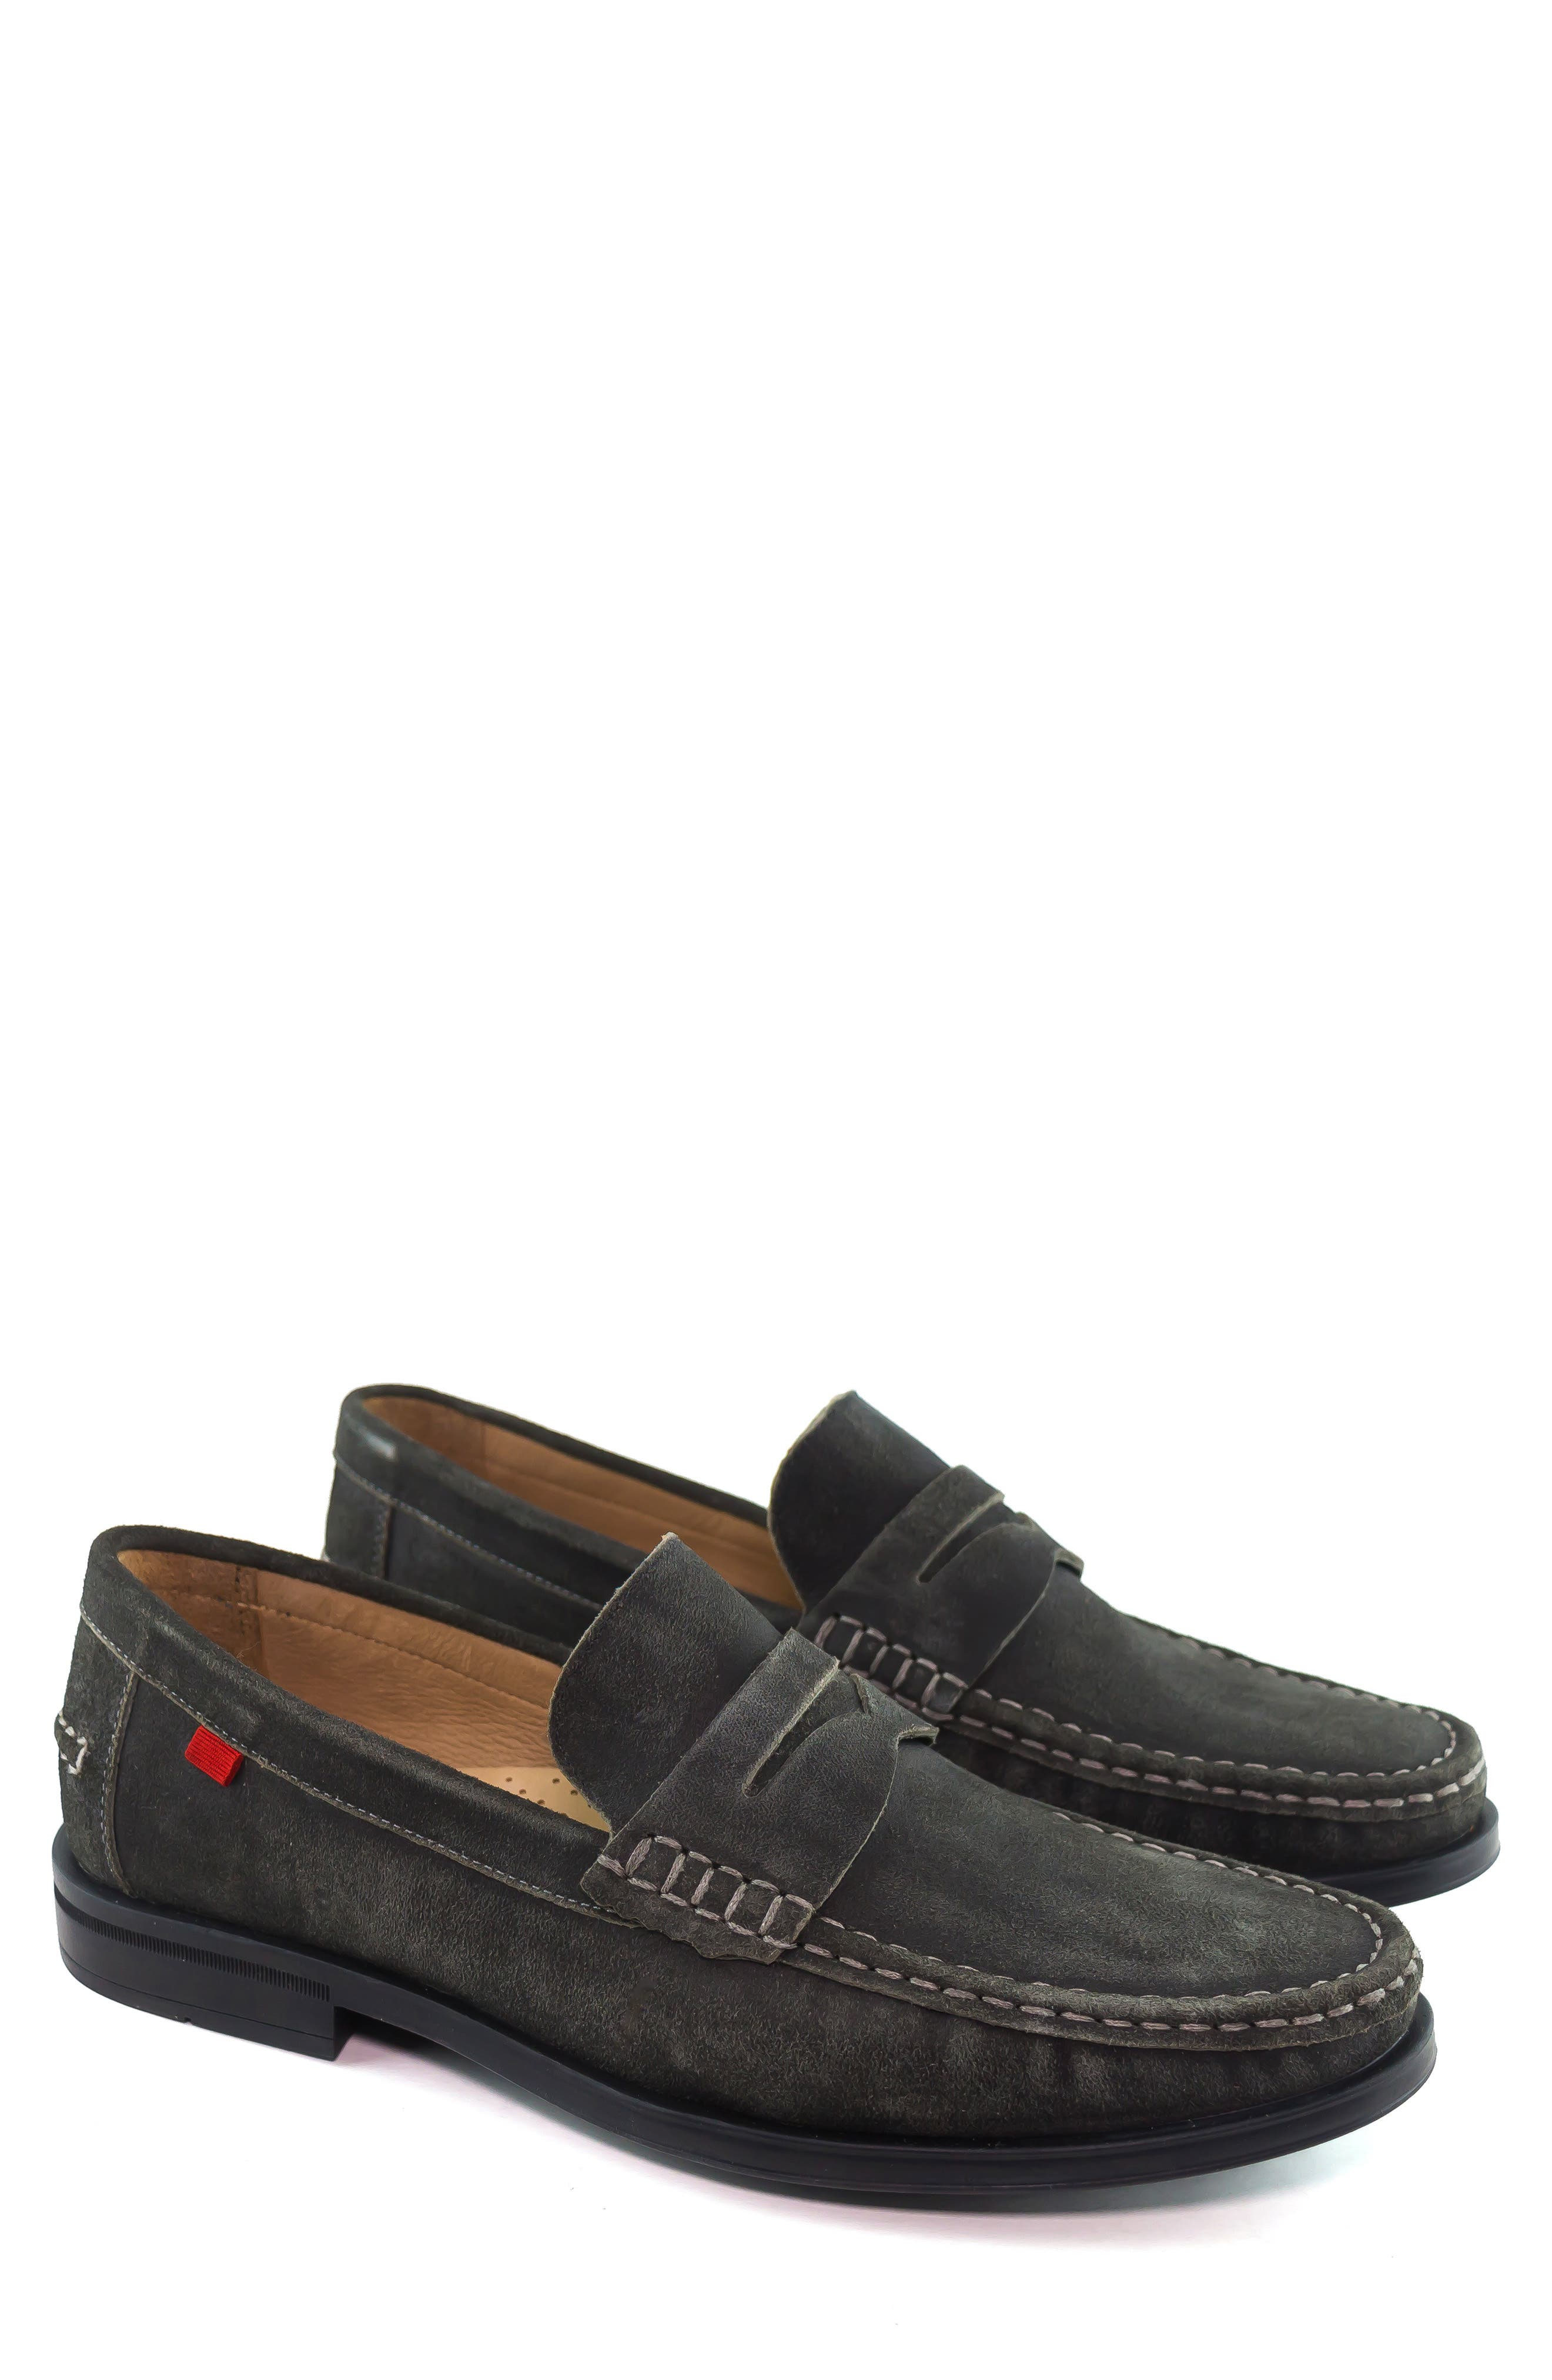 Cortland Penny Loafer,                             Alternate thumbnail 9, color,                             GRAPHITE LEATHER